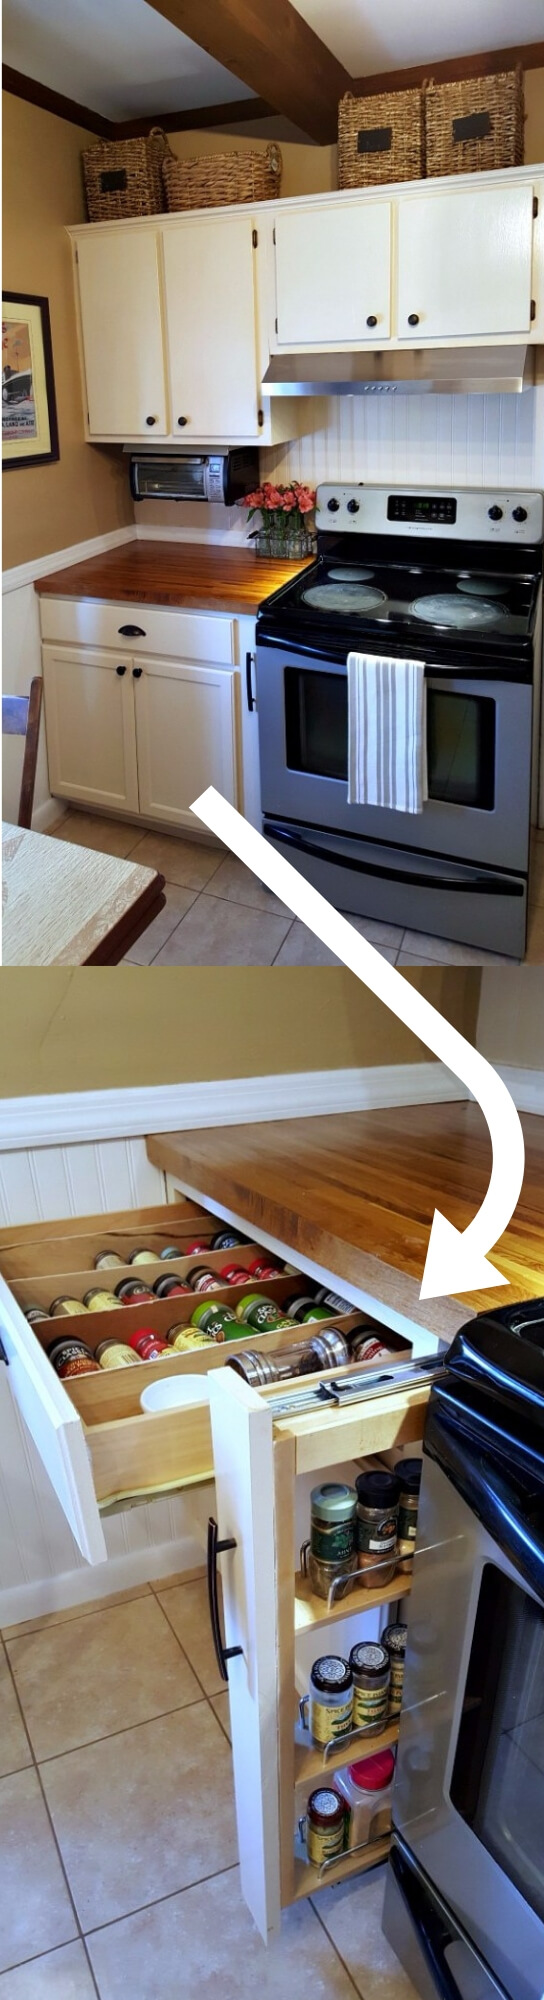 A pull out cabinet spice rack between the stove and the counter